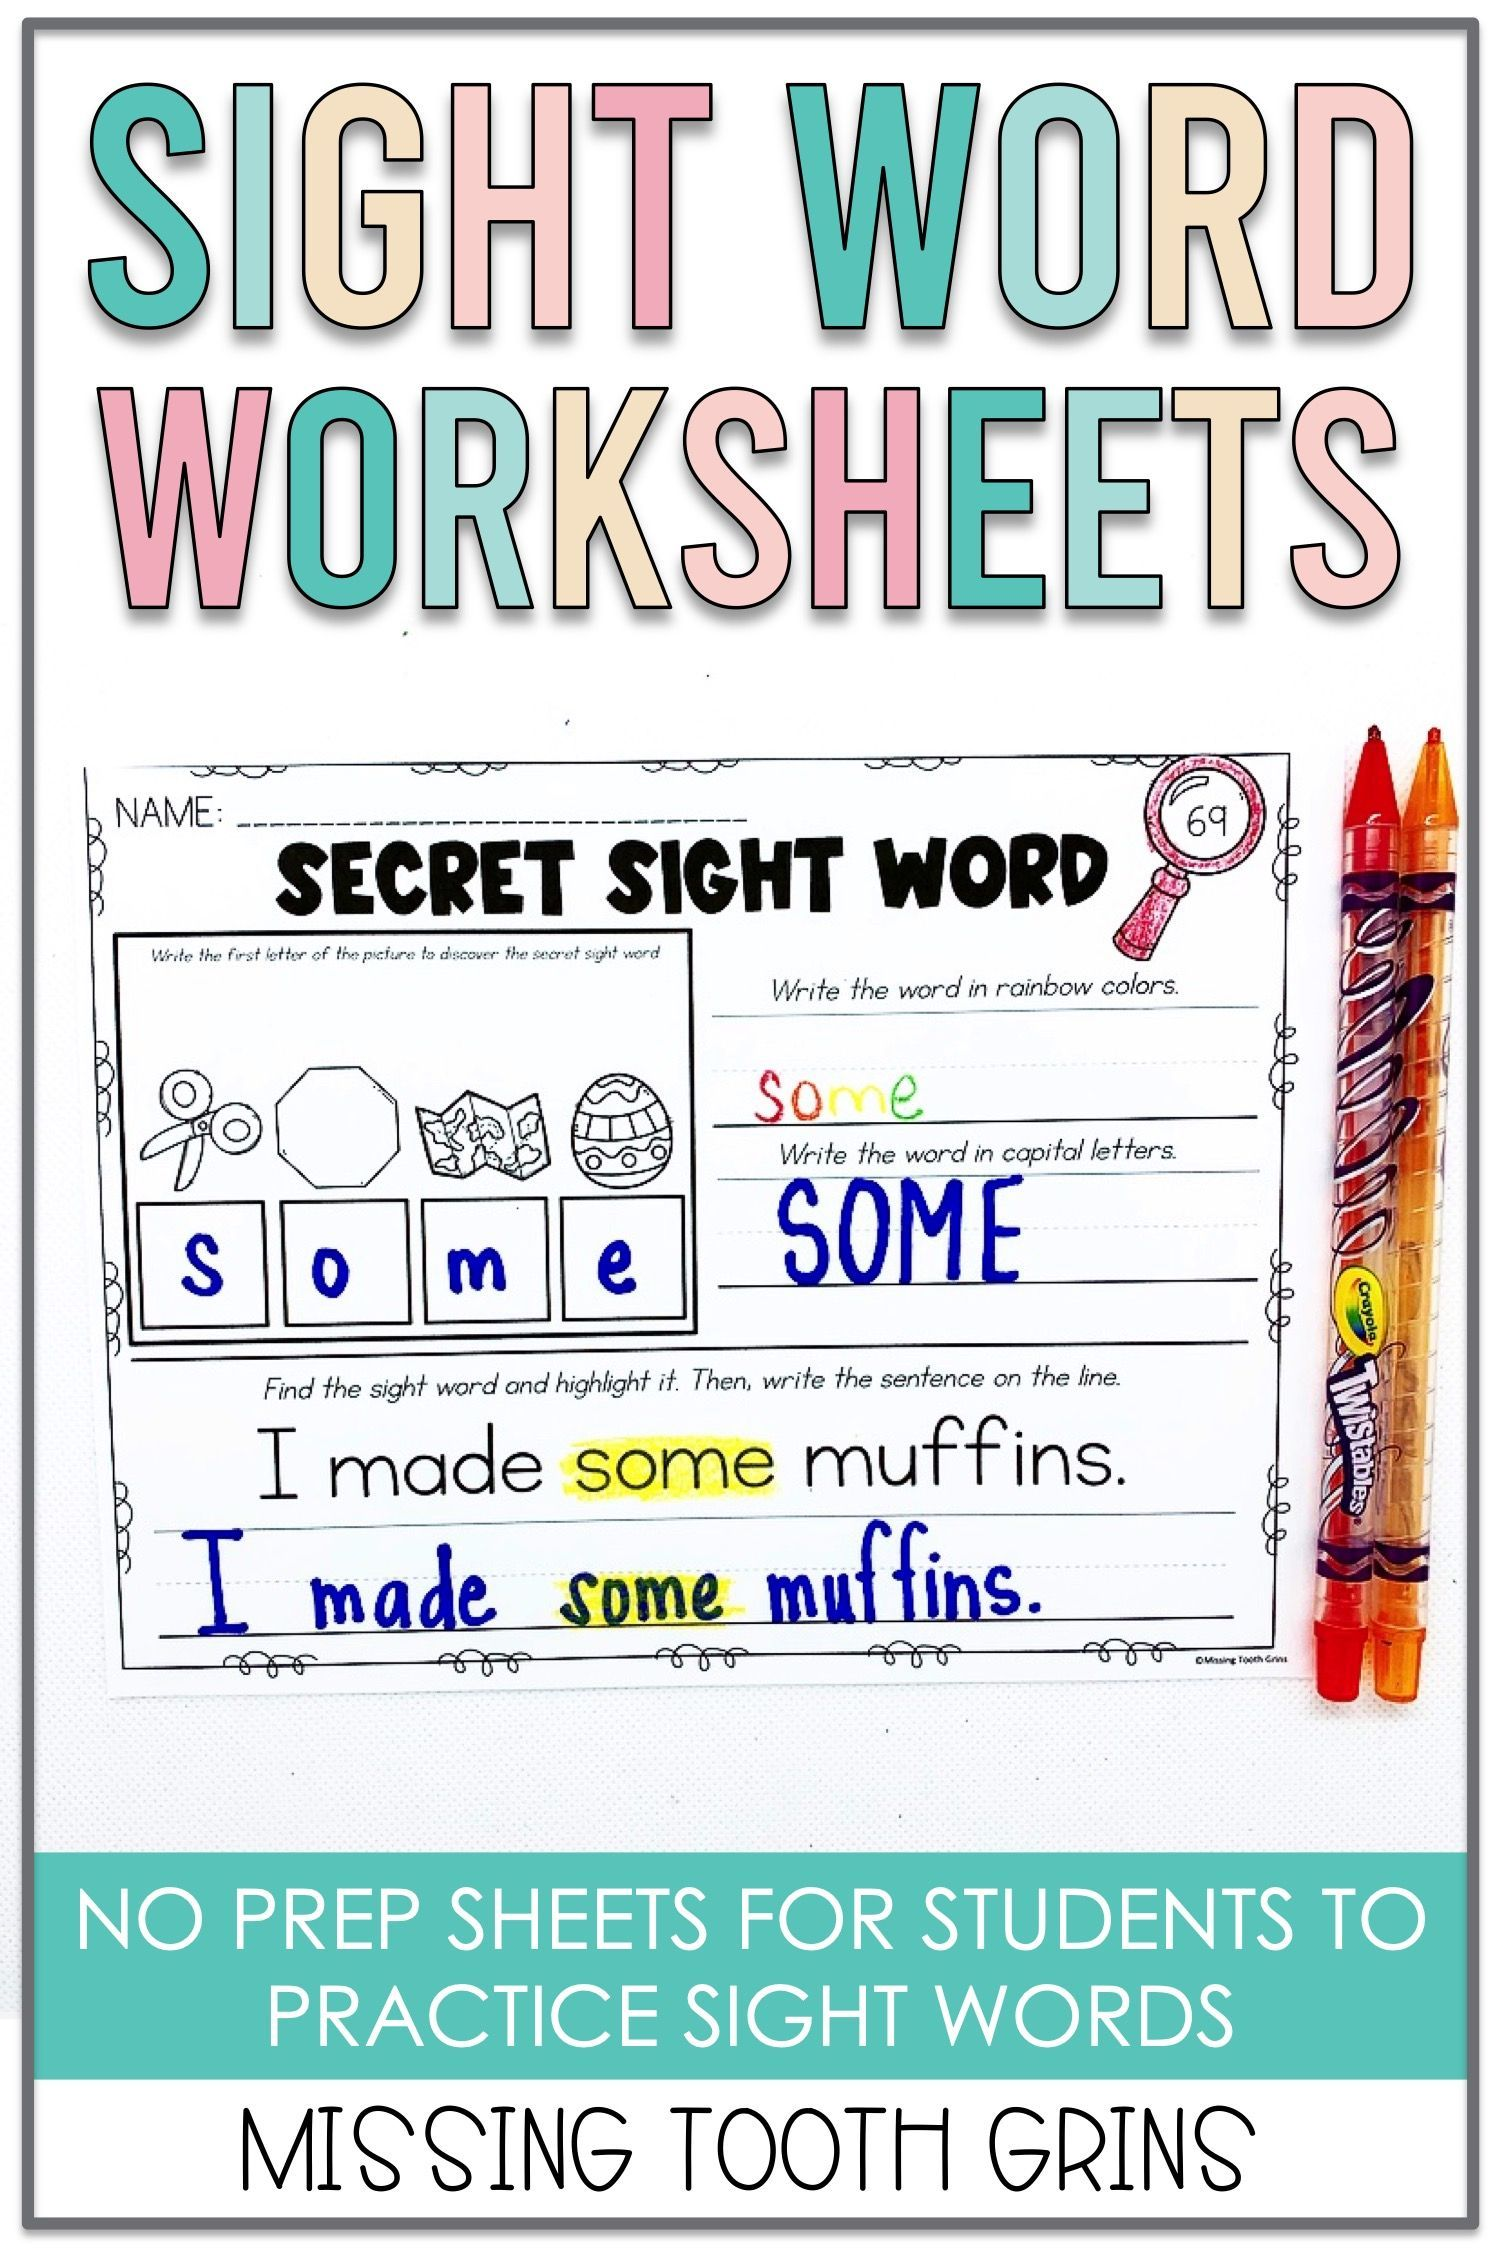 Sight Word Worksheets Distance Learning Sight Word Worksheets Writing Sight Words Sight Words [ 2250 x 1500 Pixel ]